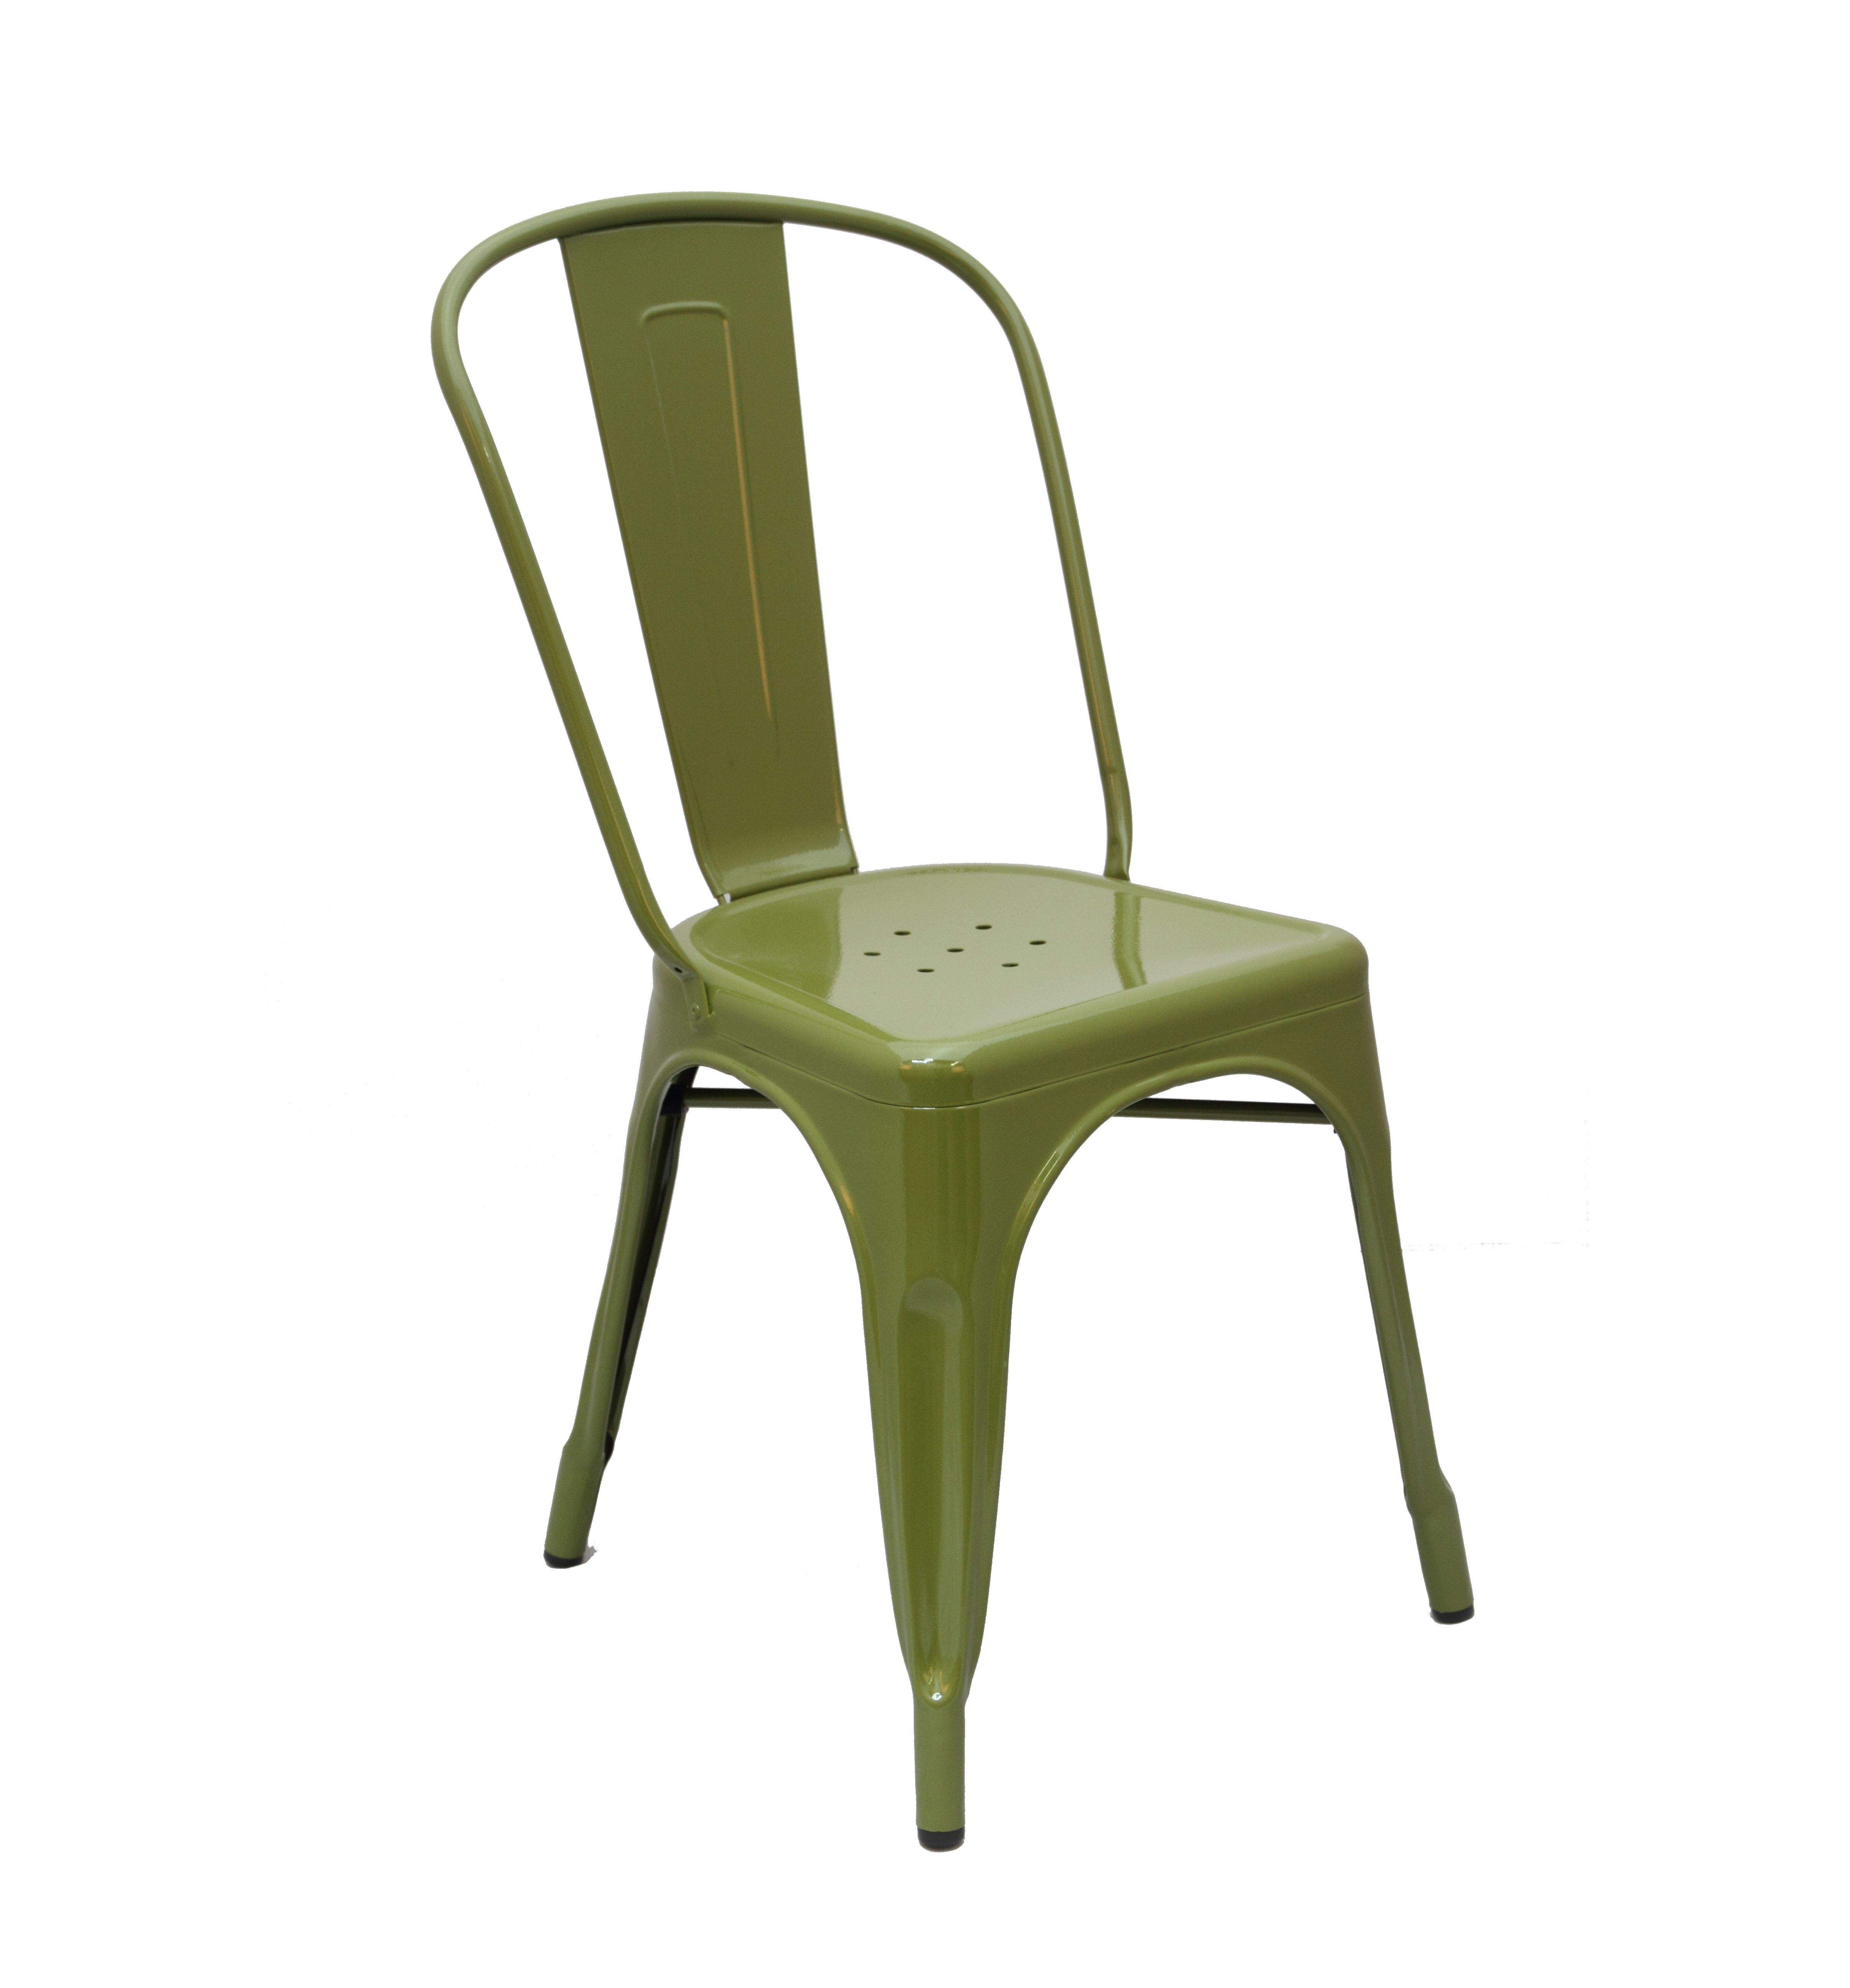 Awesome Xavier Pauchard Tolix Chair ARMY GREEN